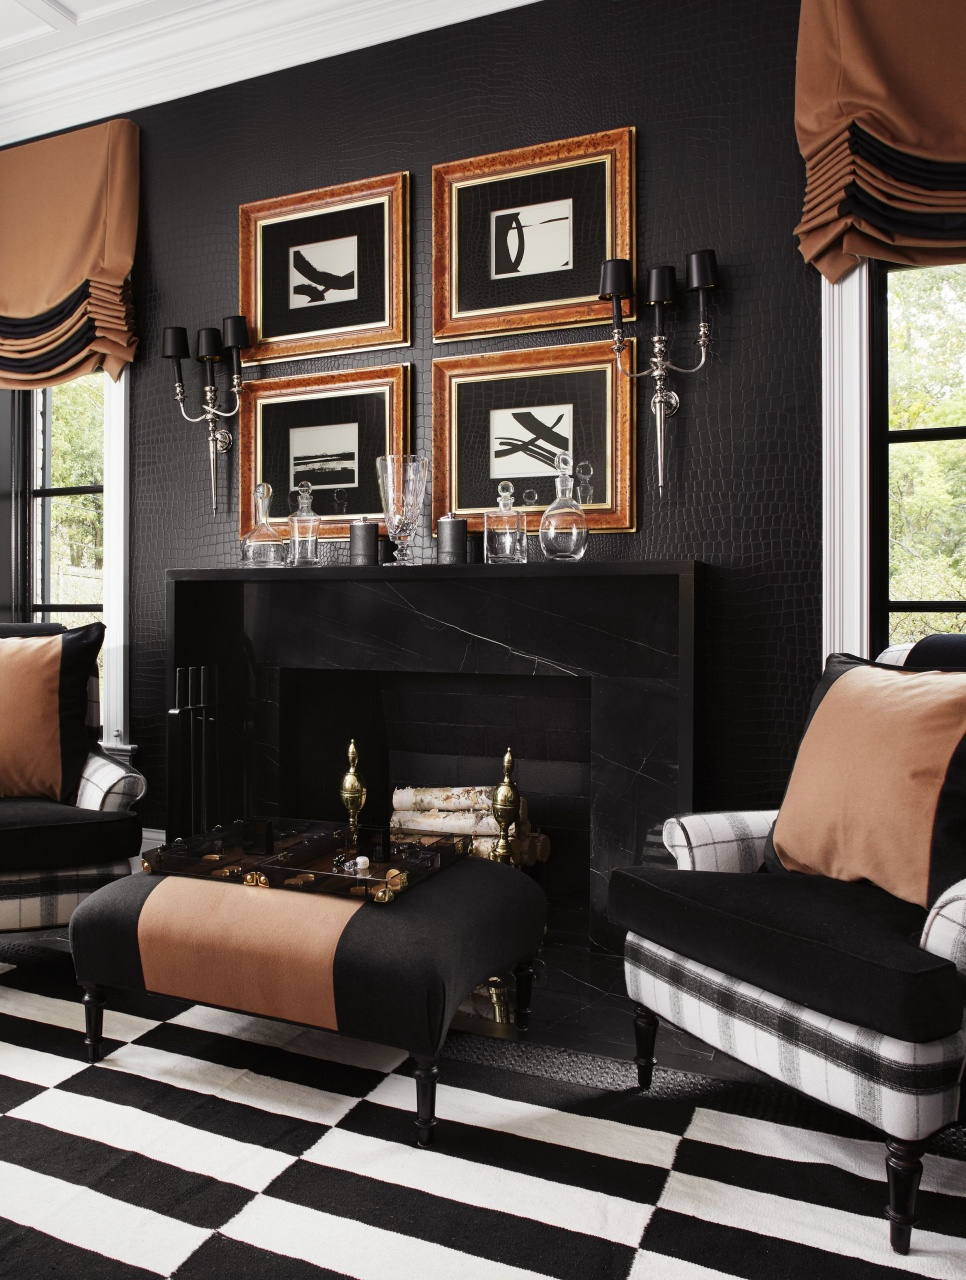 fall room decor ideas pin by anna damianidou on a touch of black from fall room decor ideas